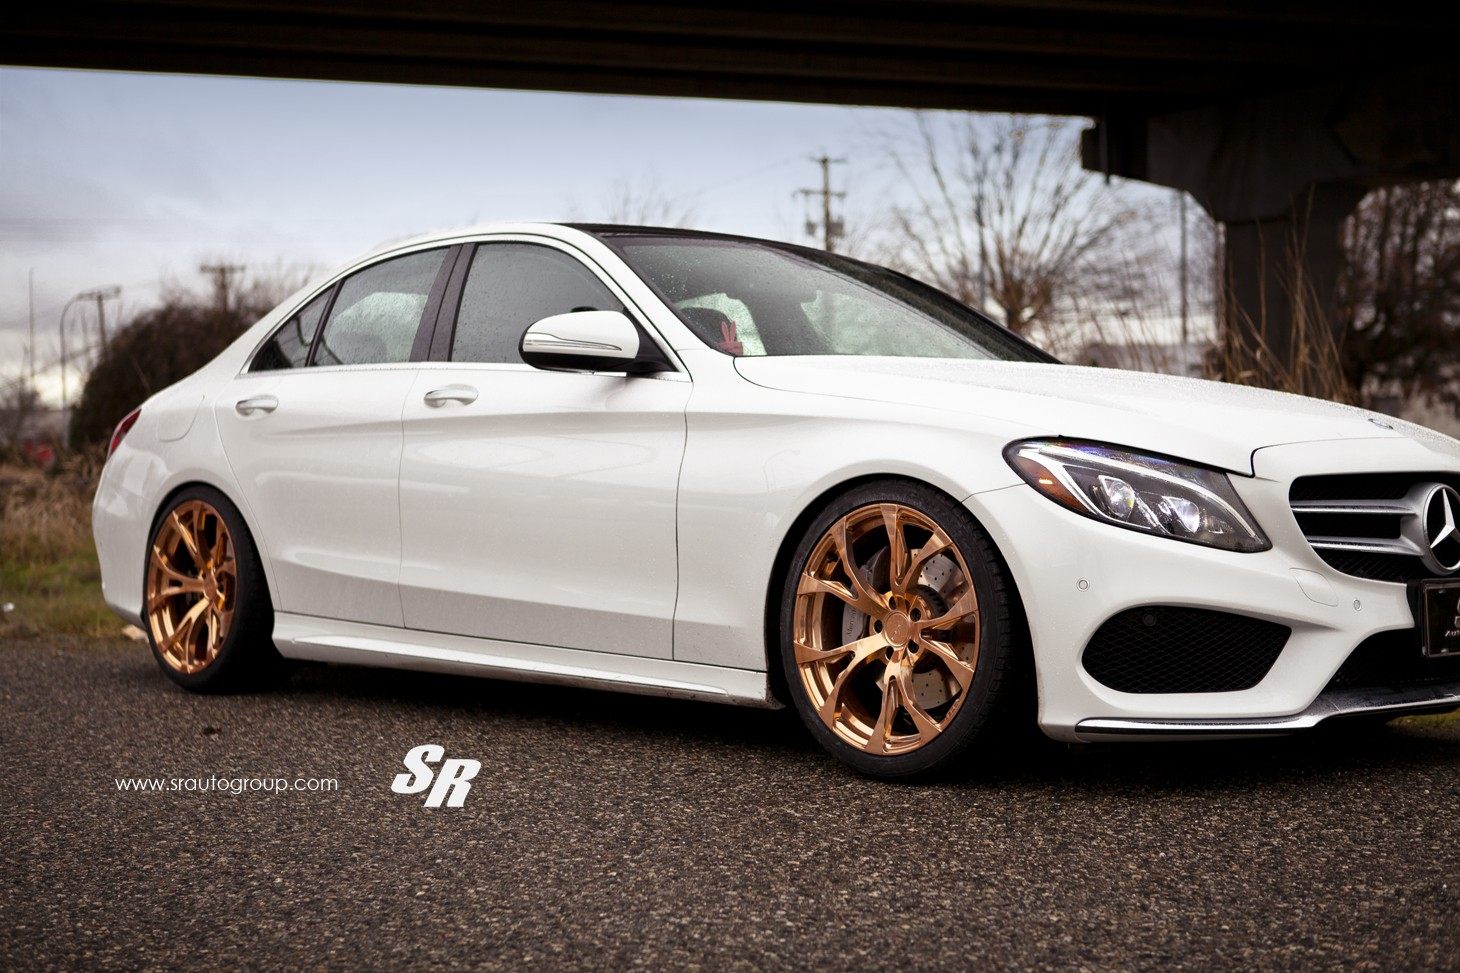 tuningcars 2015 mercedes c300 gets gold pur wheels shows its rich side. Black Bedroom Furniture Sets. Home Design Ideas